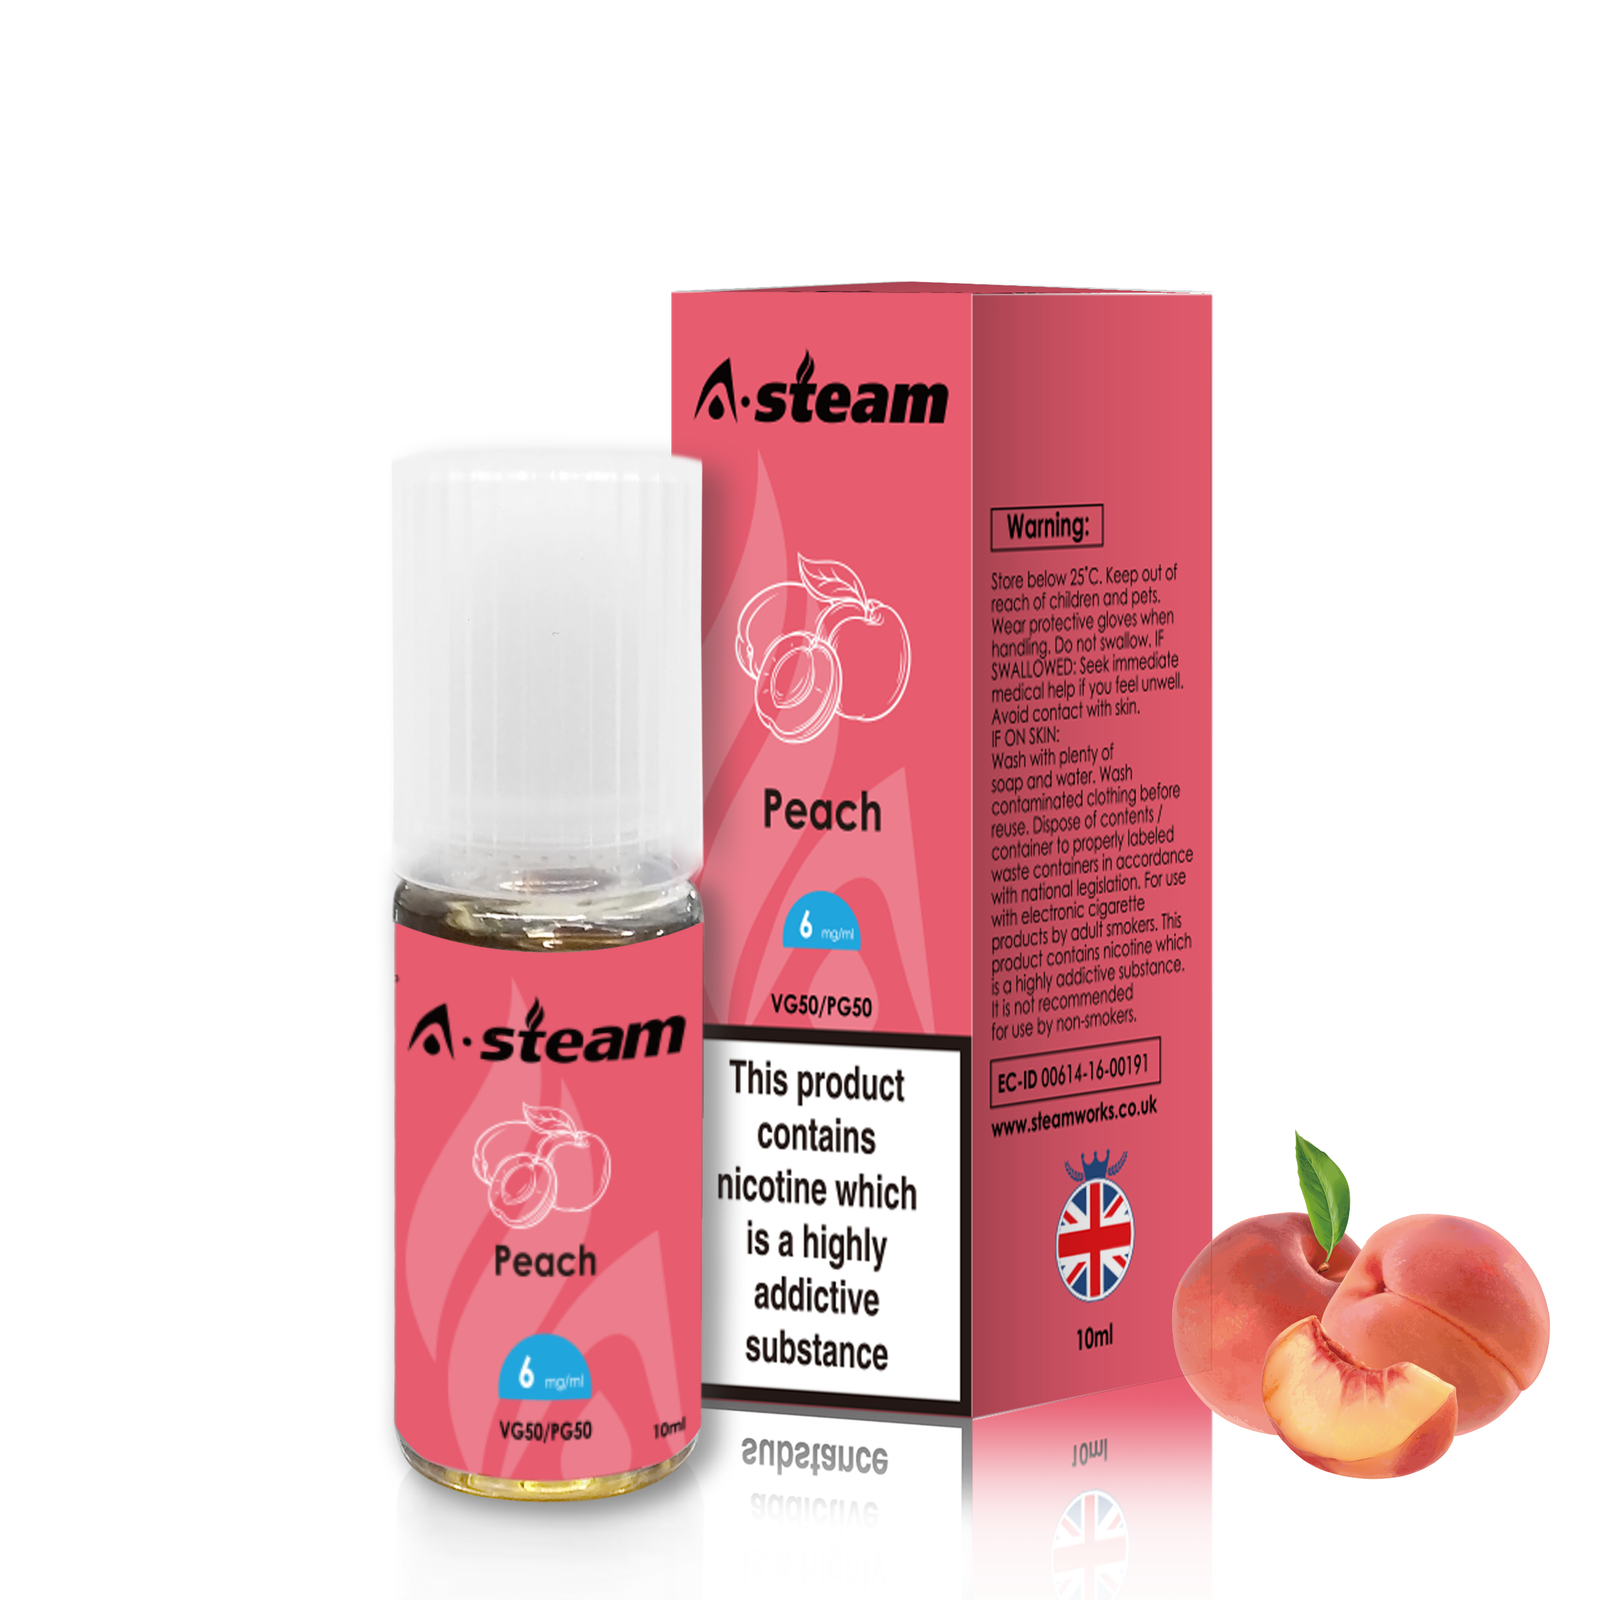 A-STEAM Peach